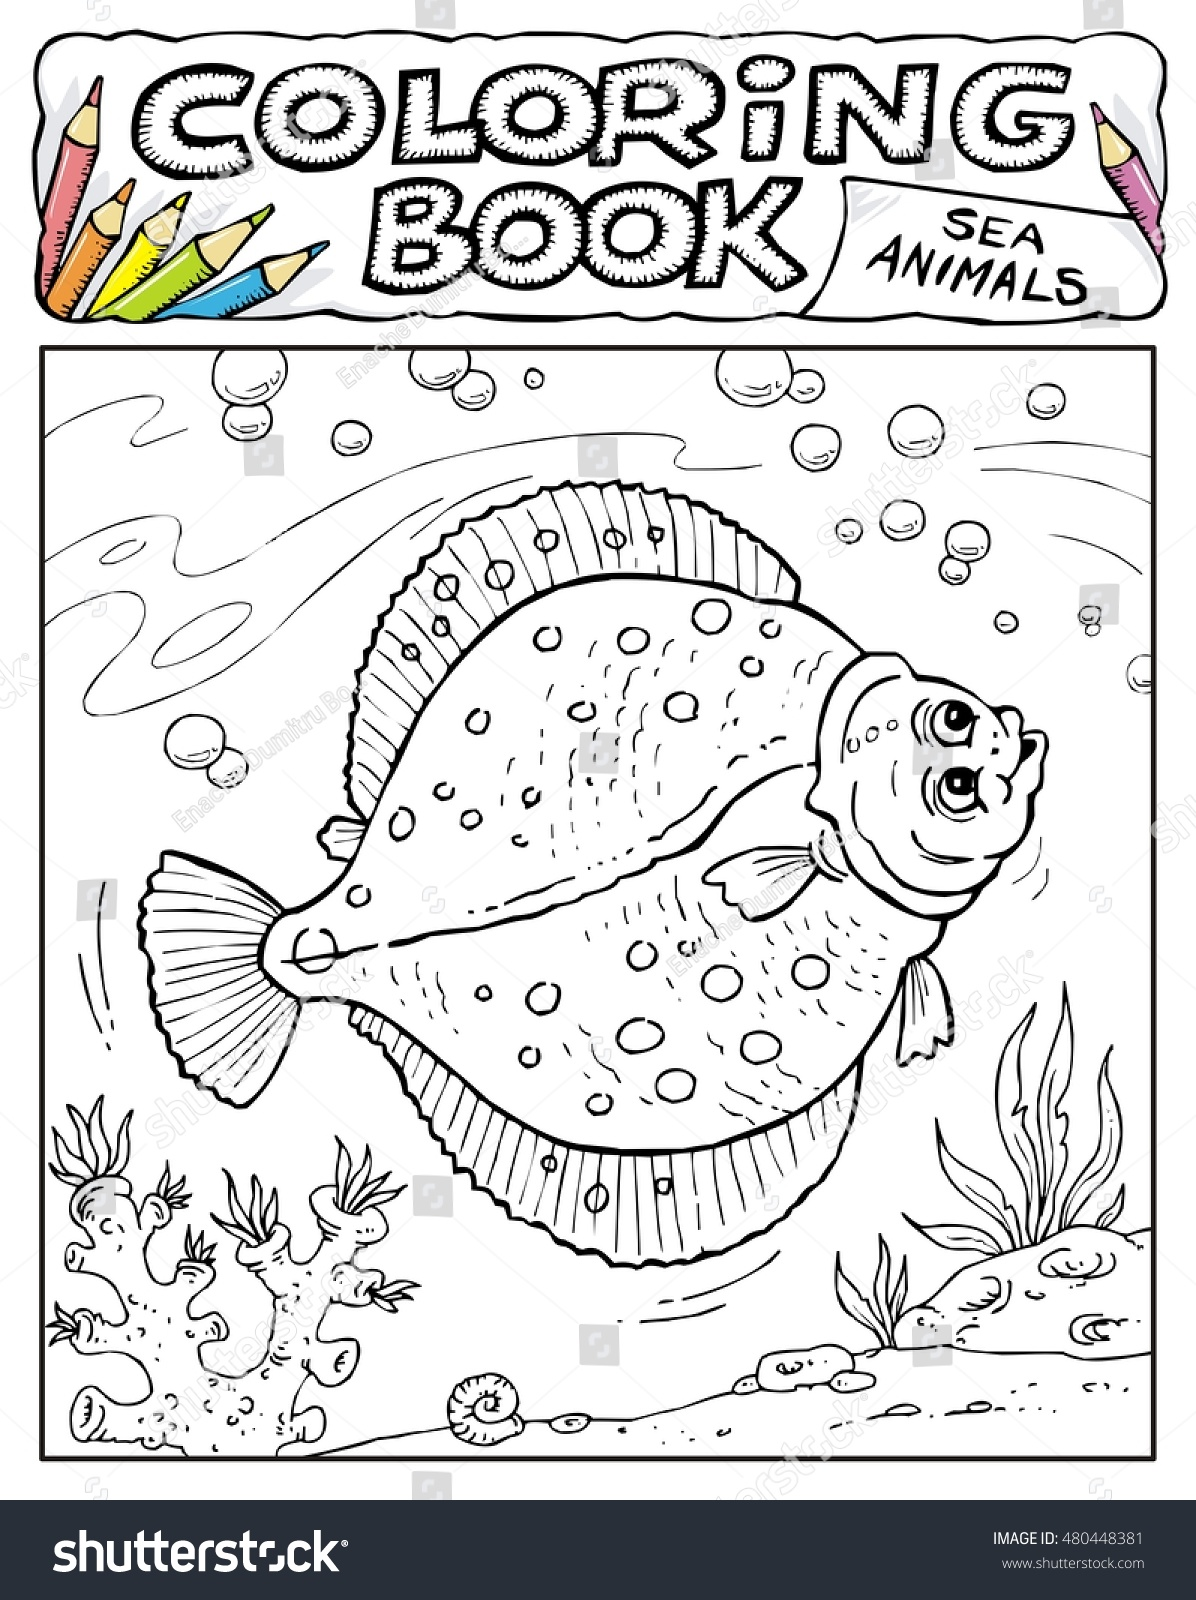 plaice coloring book pages sea animals collection page no 3 4 - Coloring Book Pages Animals